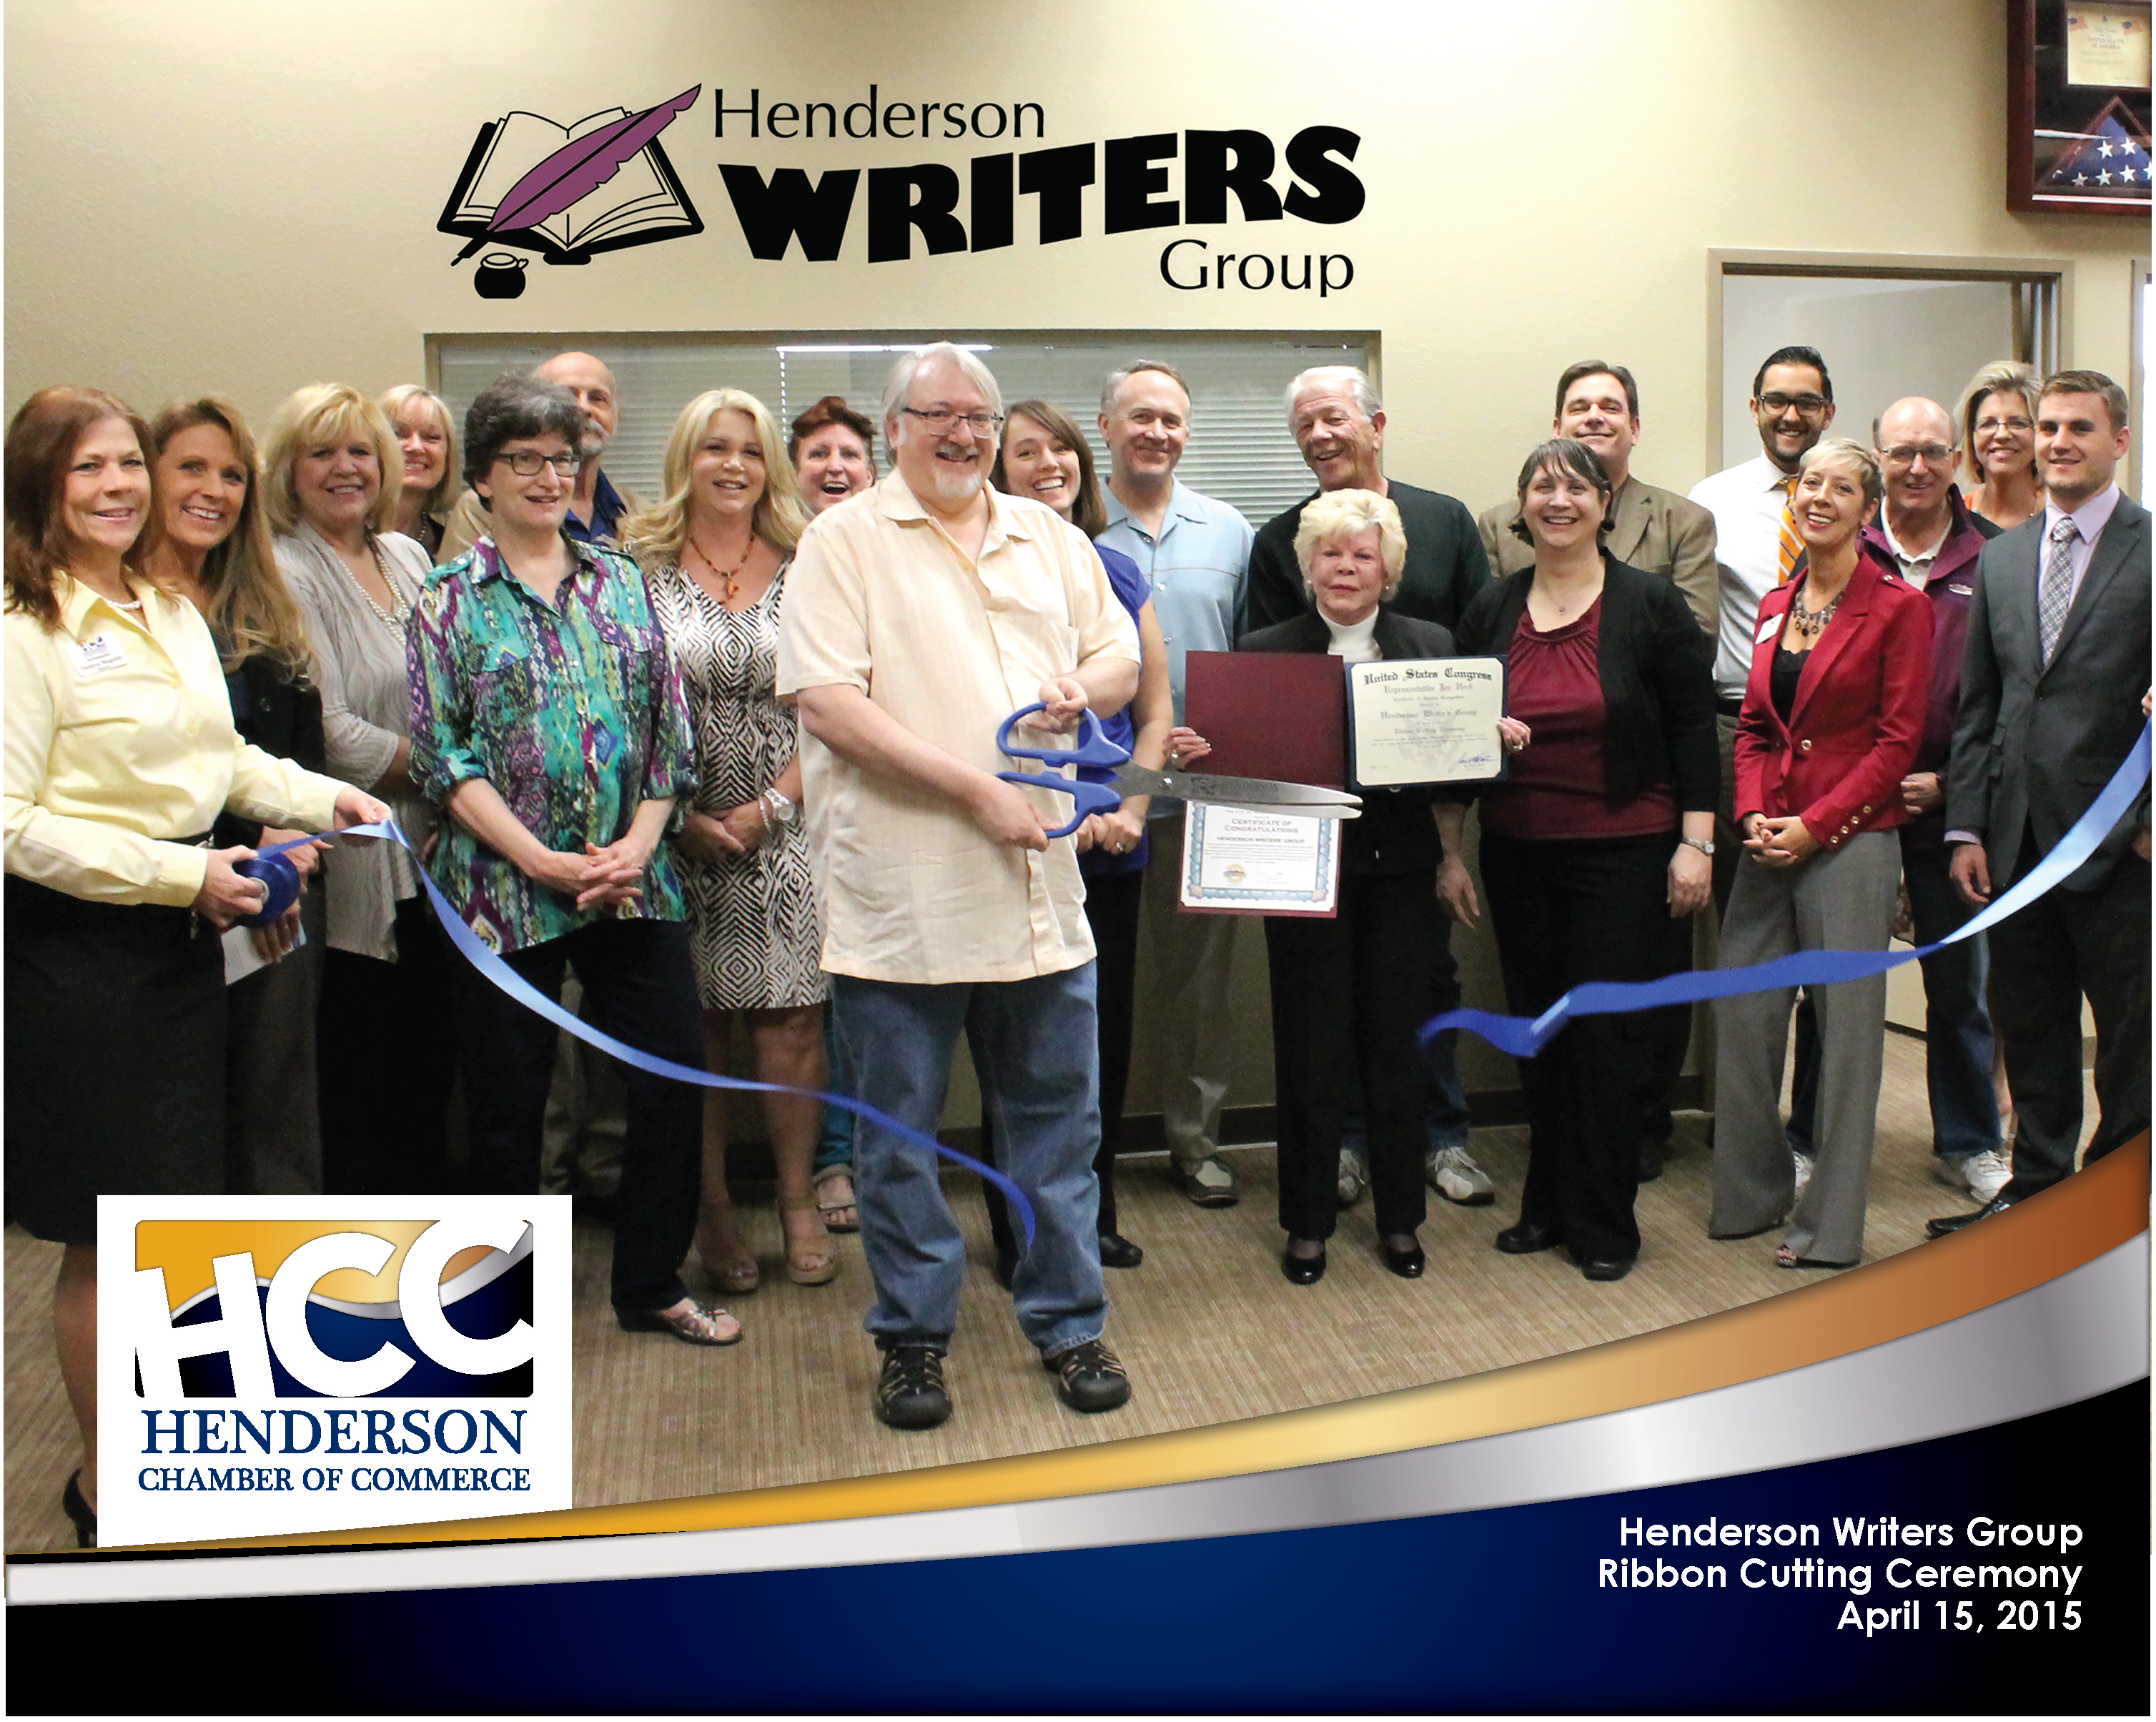 RC Henderson Writers Group